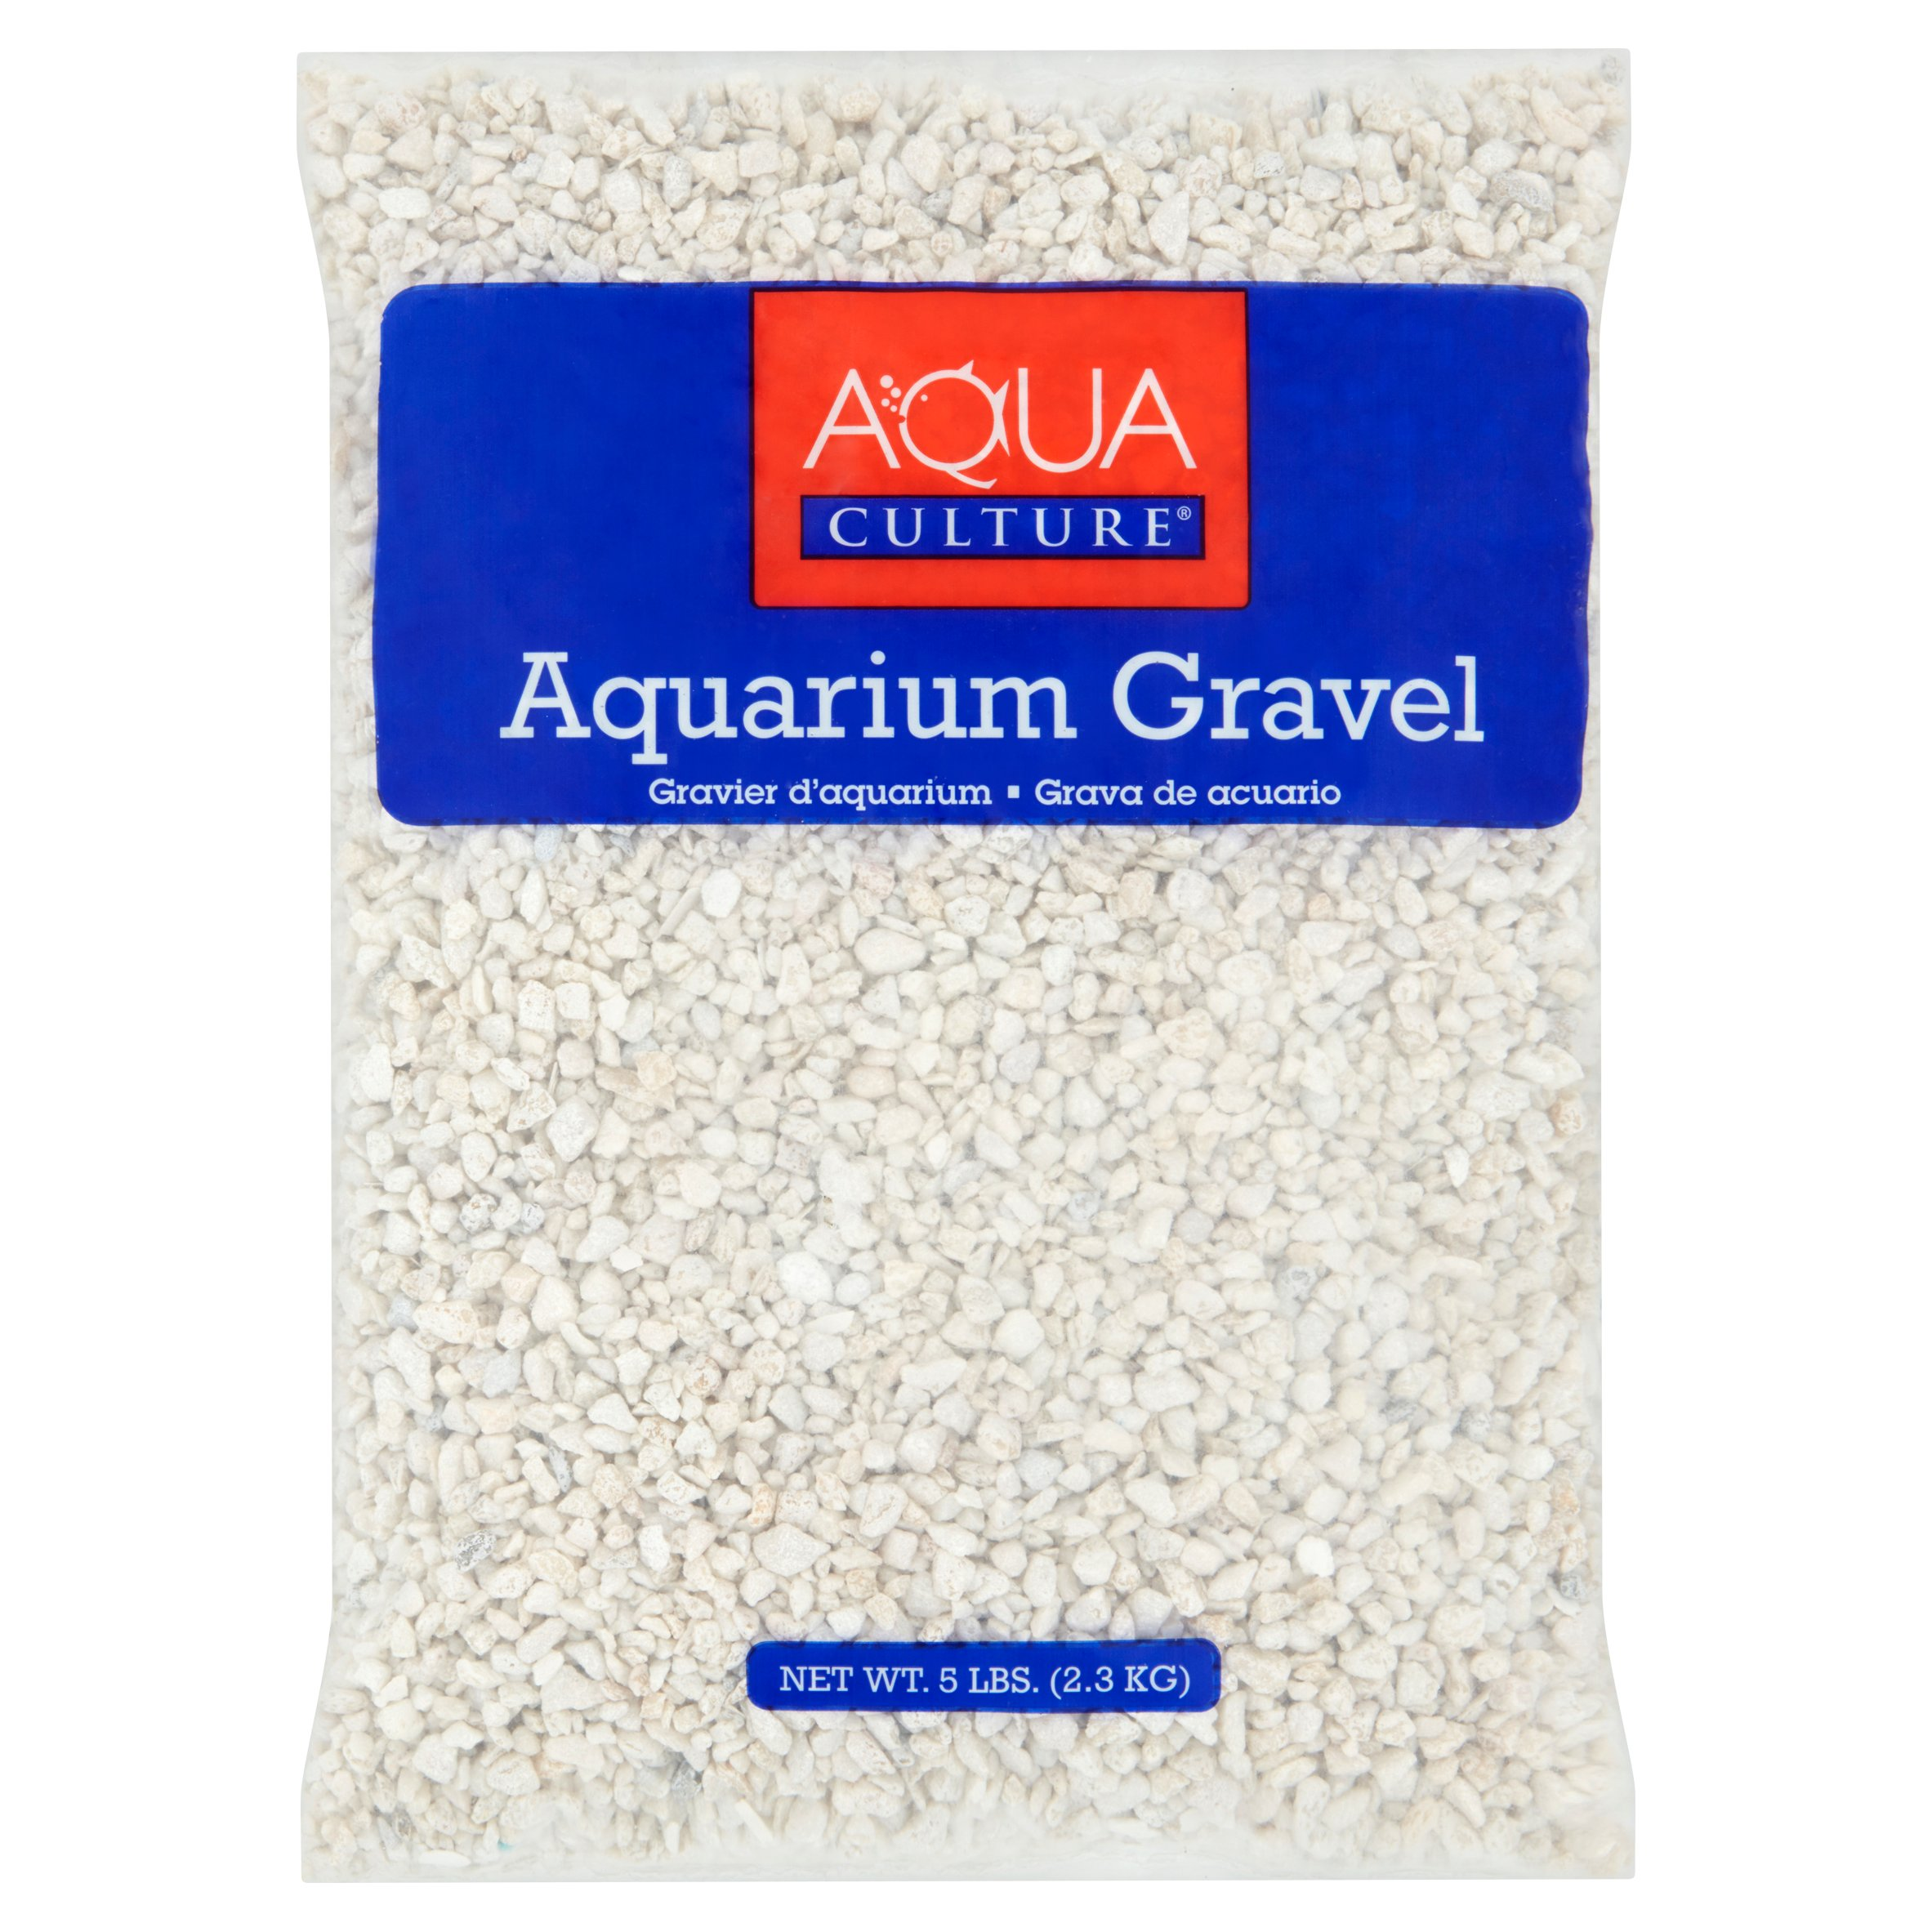 Aqua Culture Aquarium Gravel, White, 5 lbs